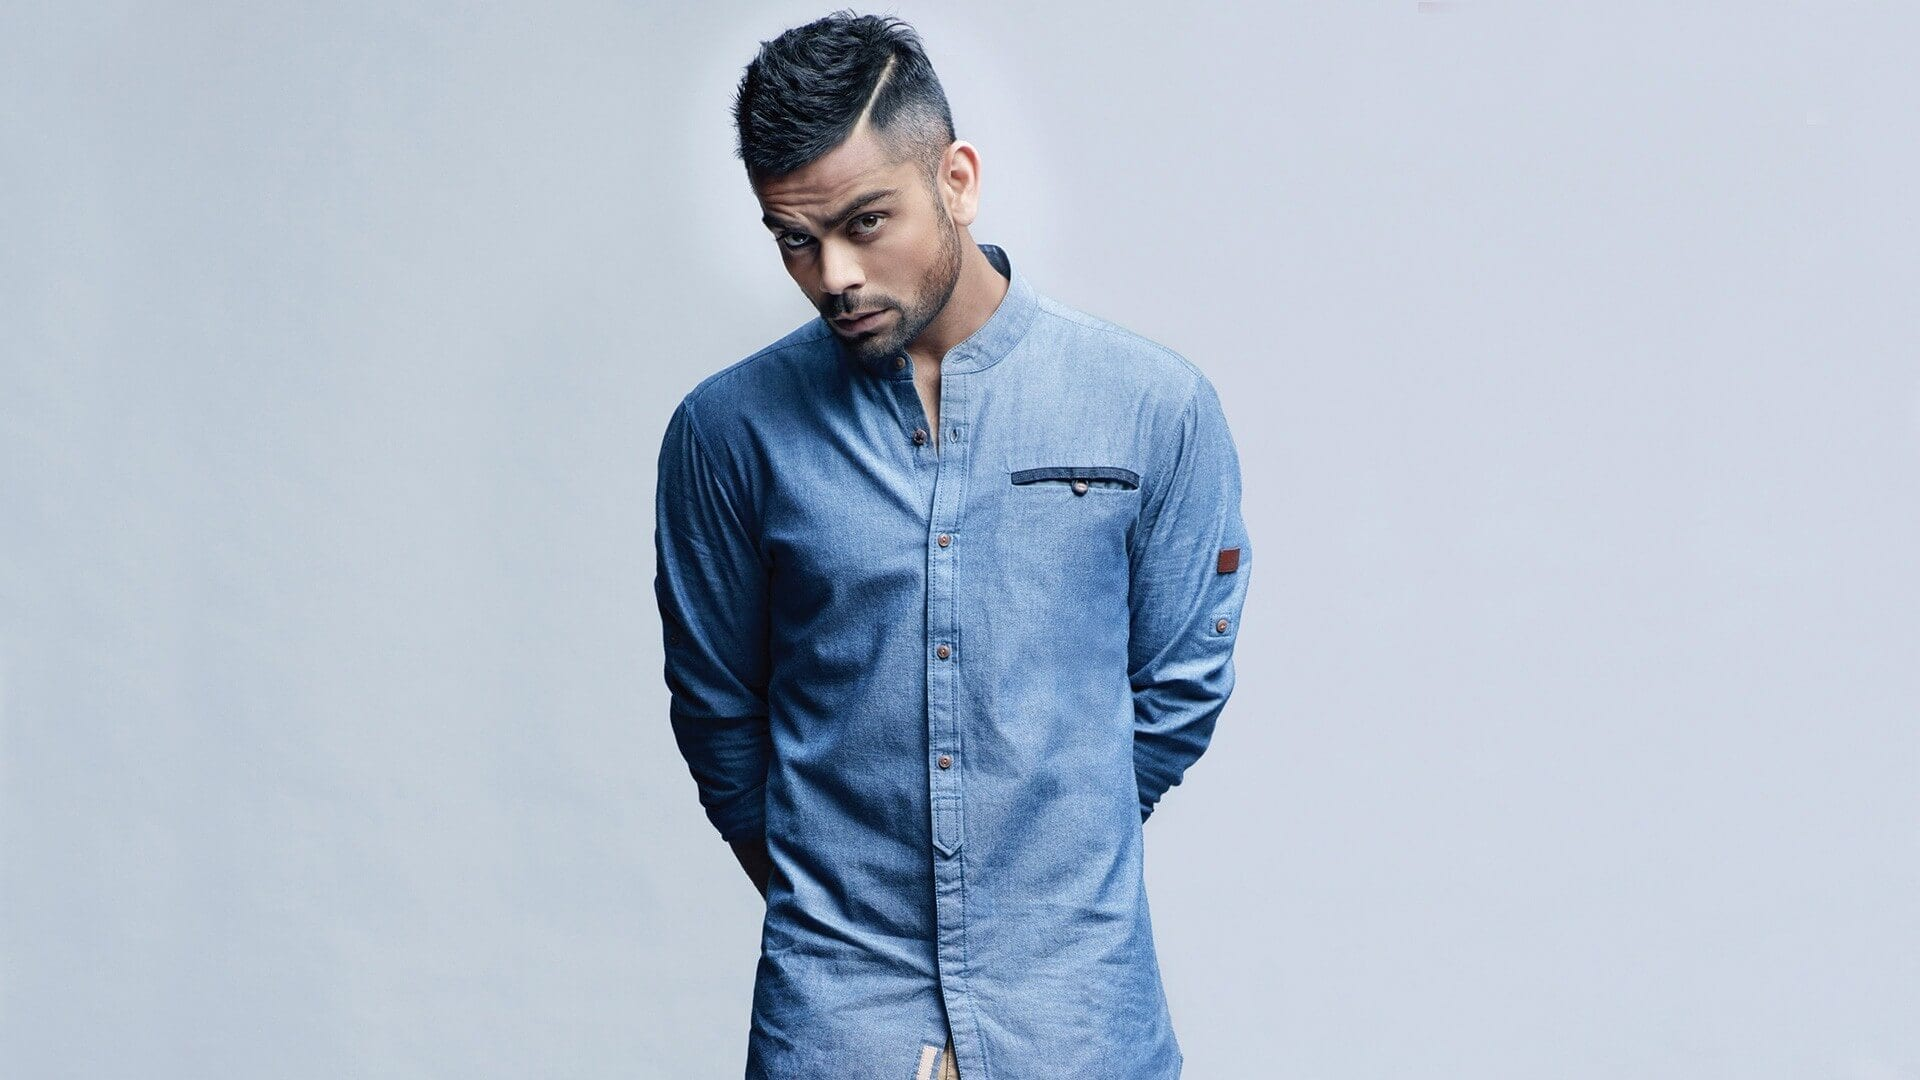 Goatees and Mustaches with trimmed Scruff – VIrat Kohli